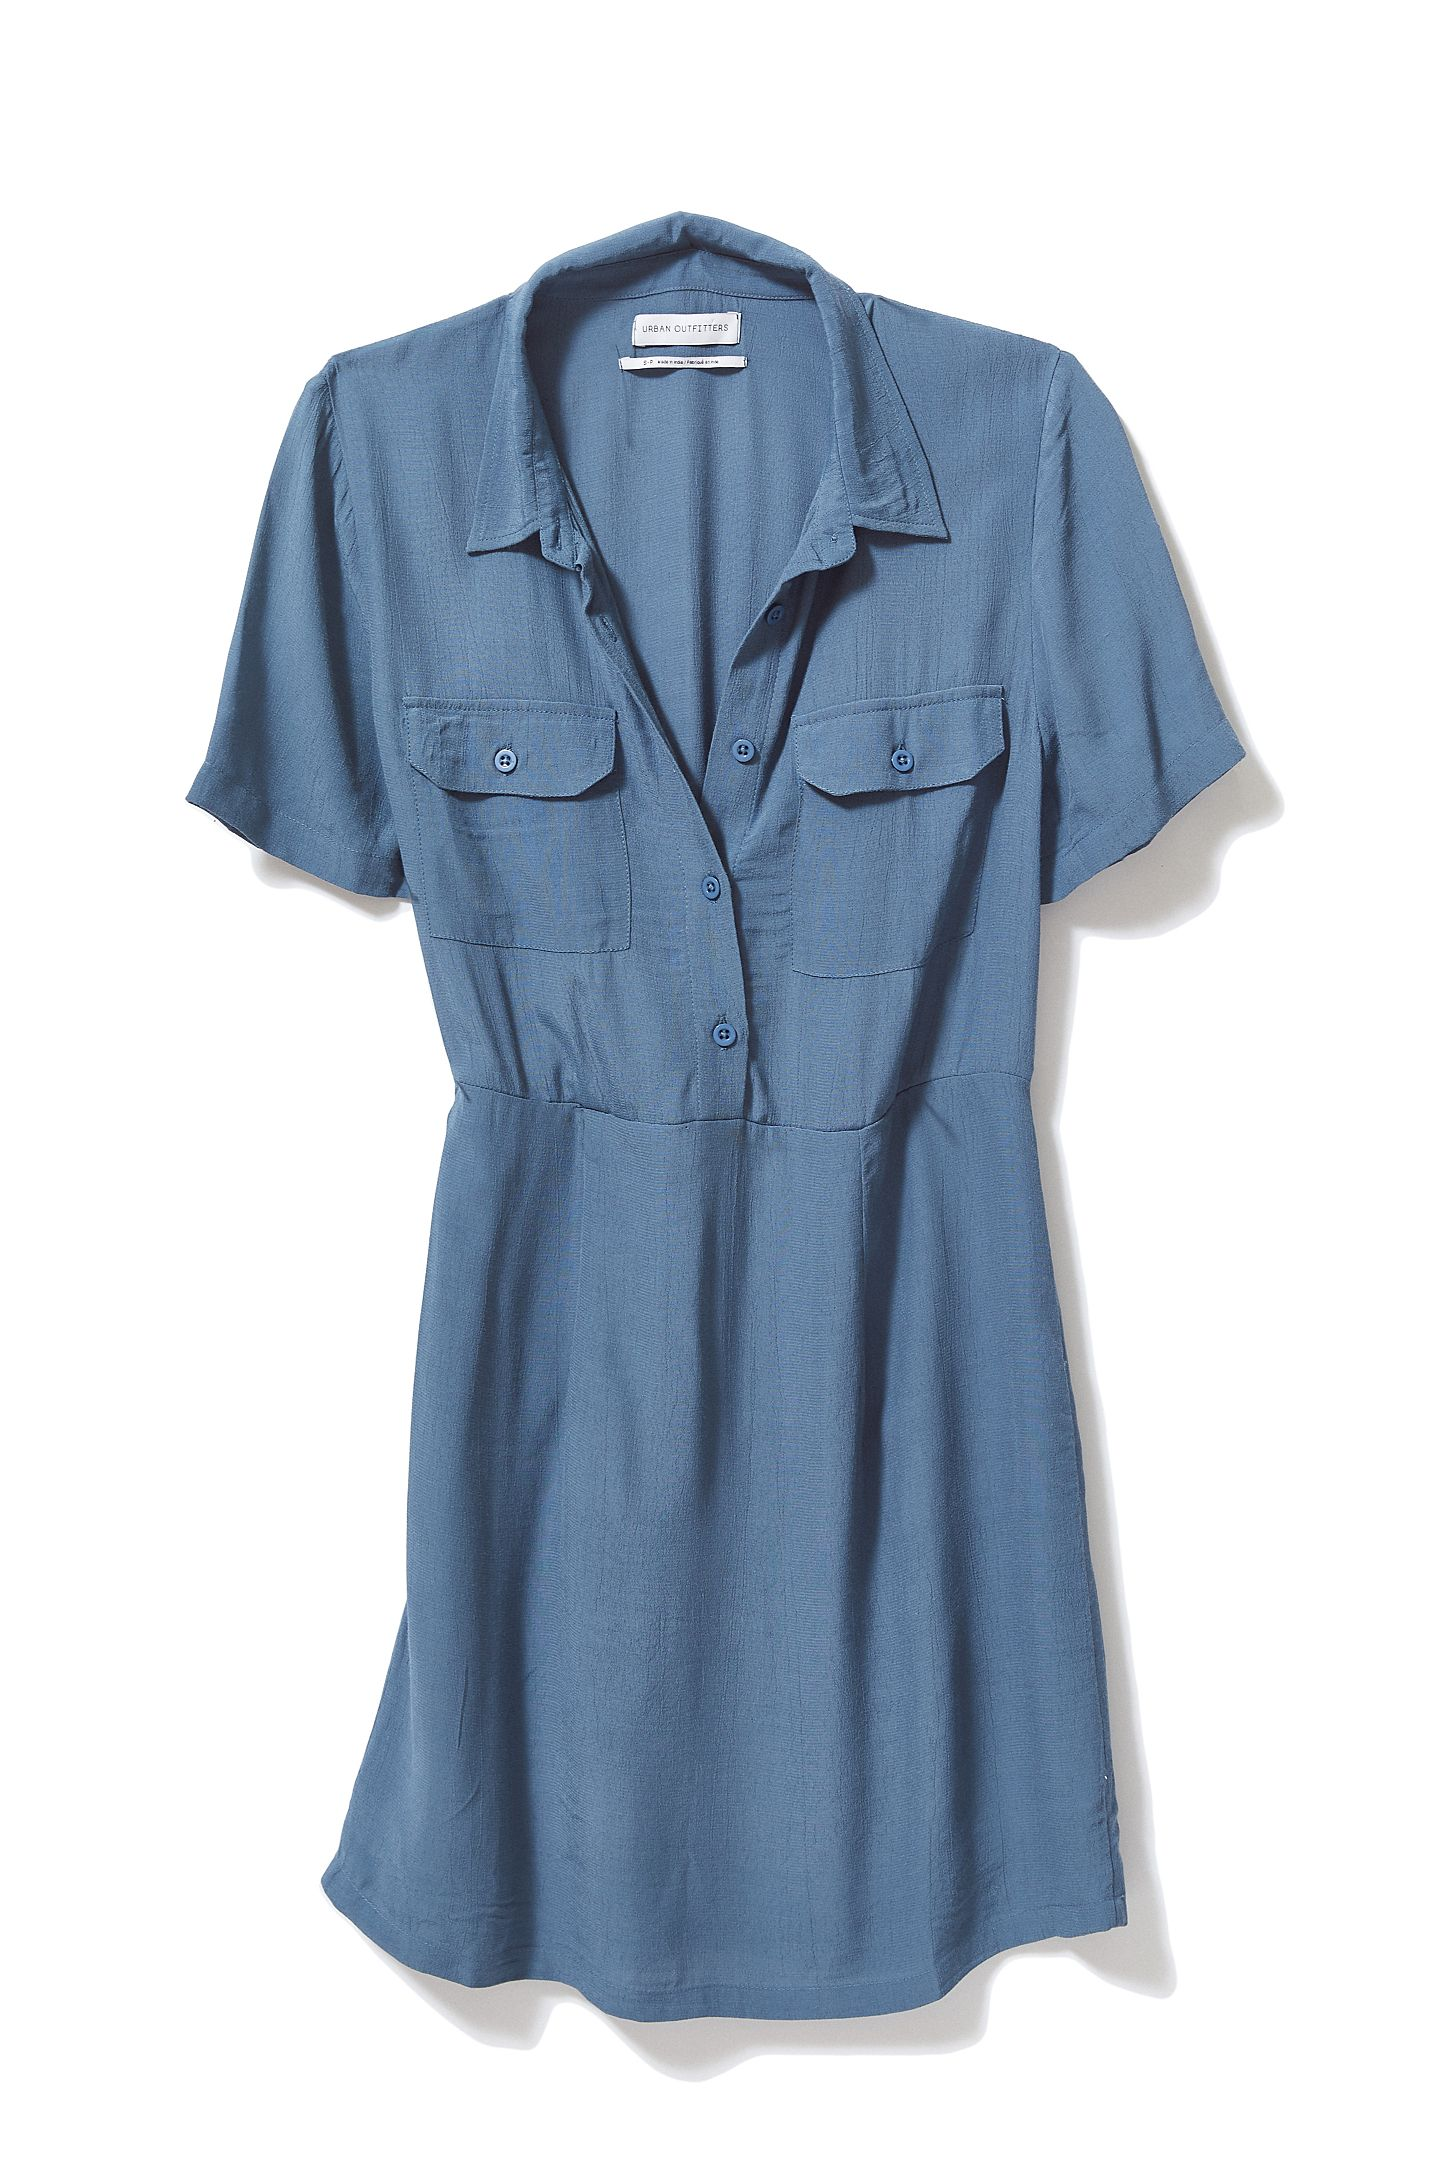 559effd871d44 Urban Outfitters Blue Shirt Dress - DREAMWORKS